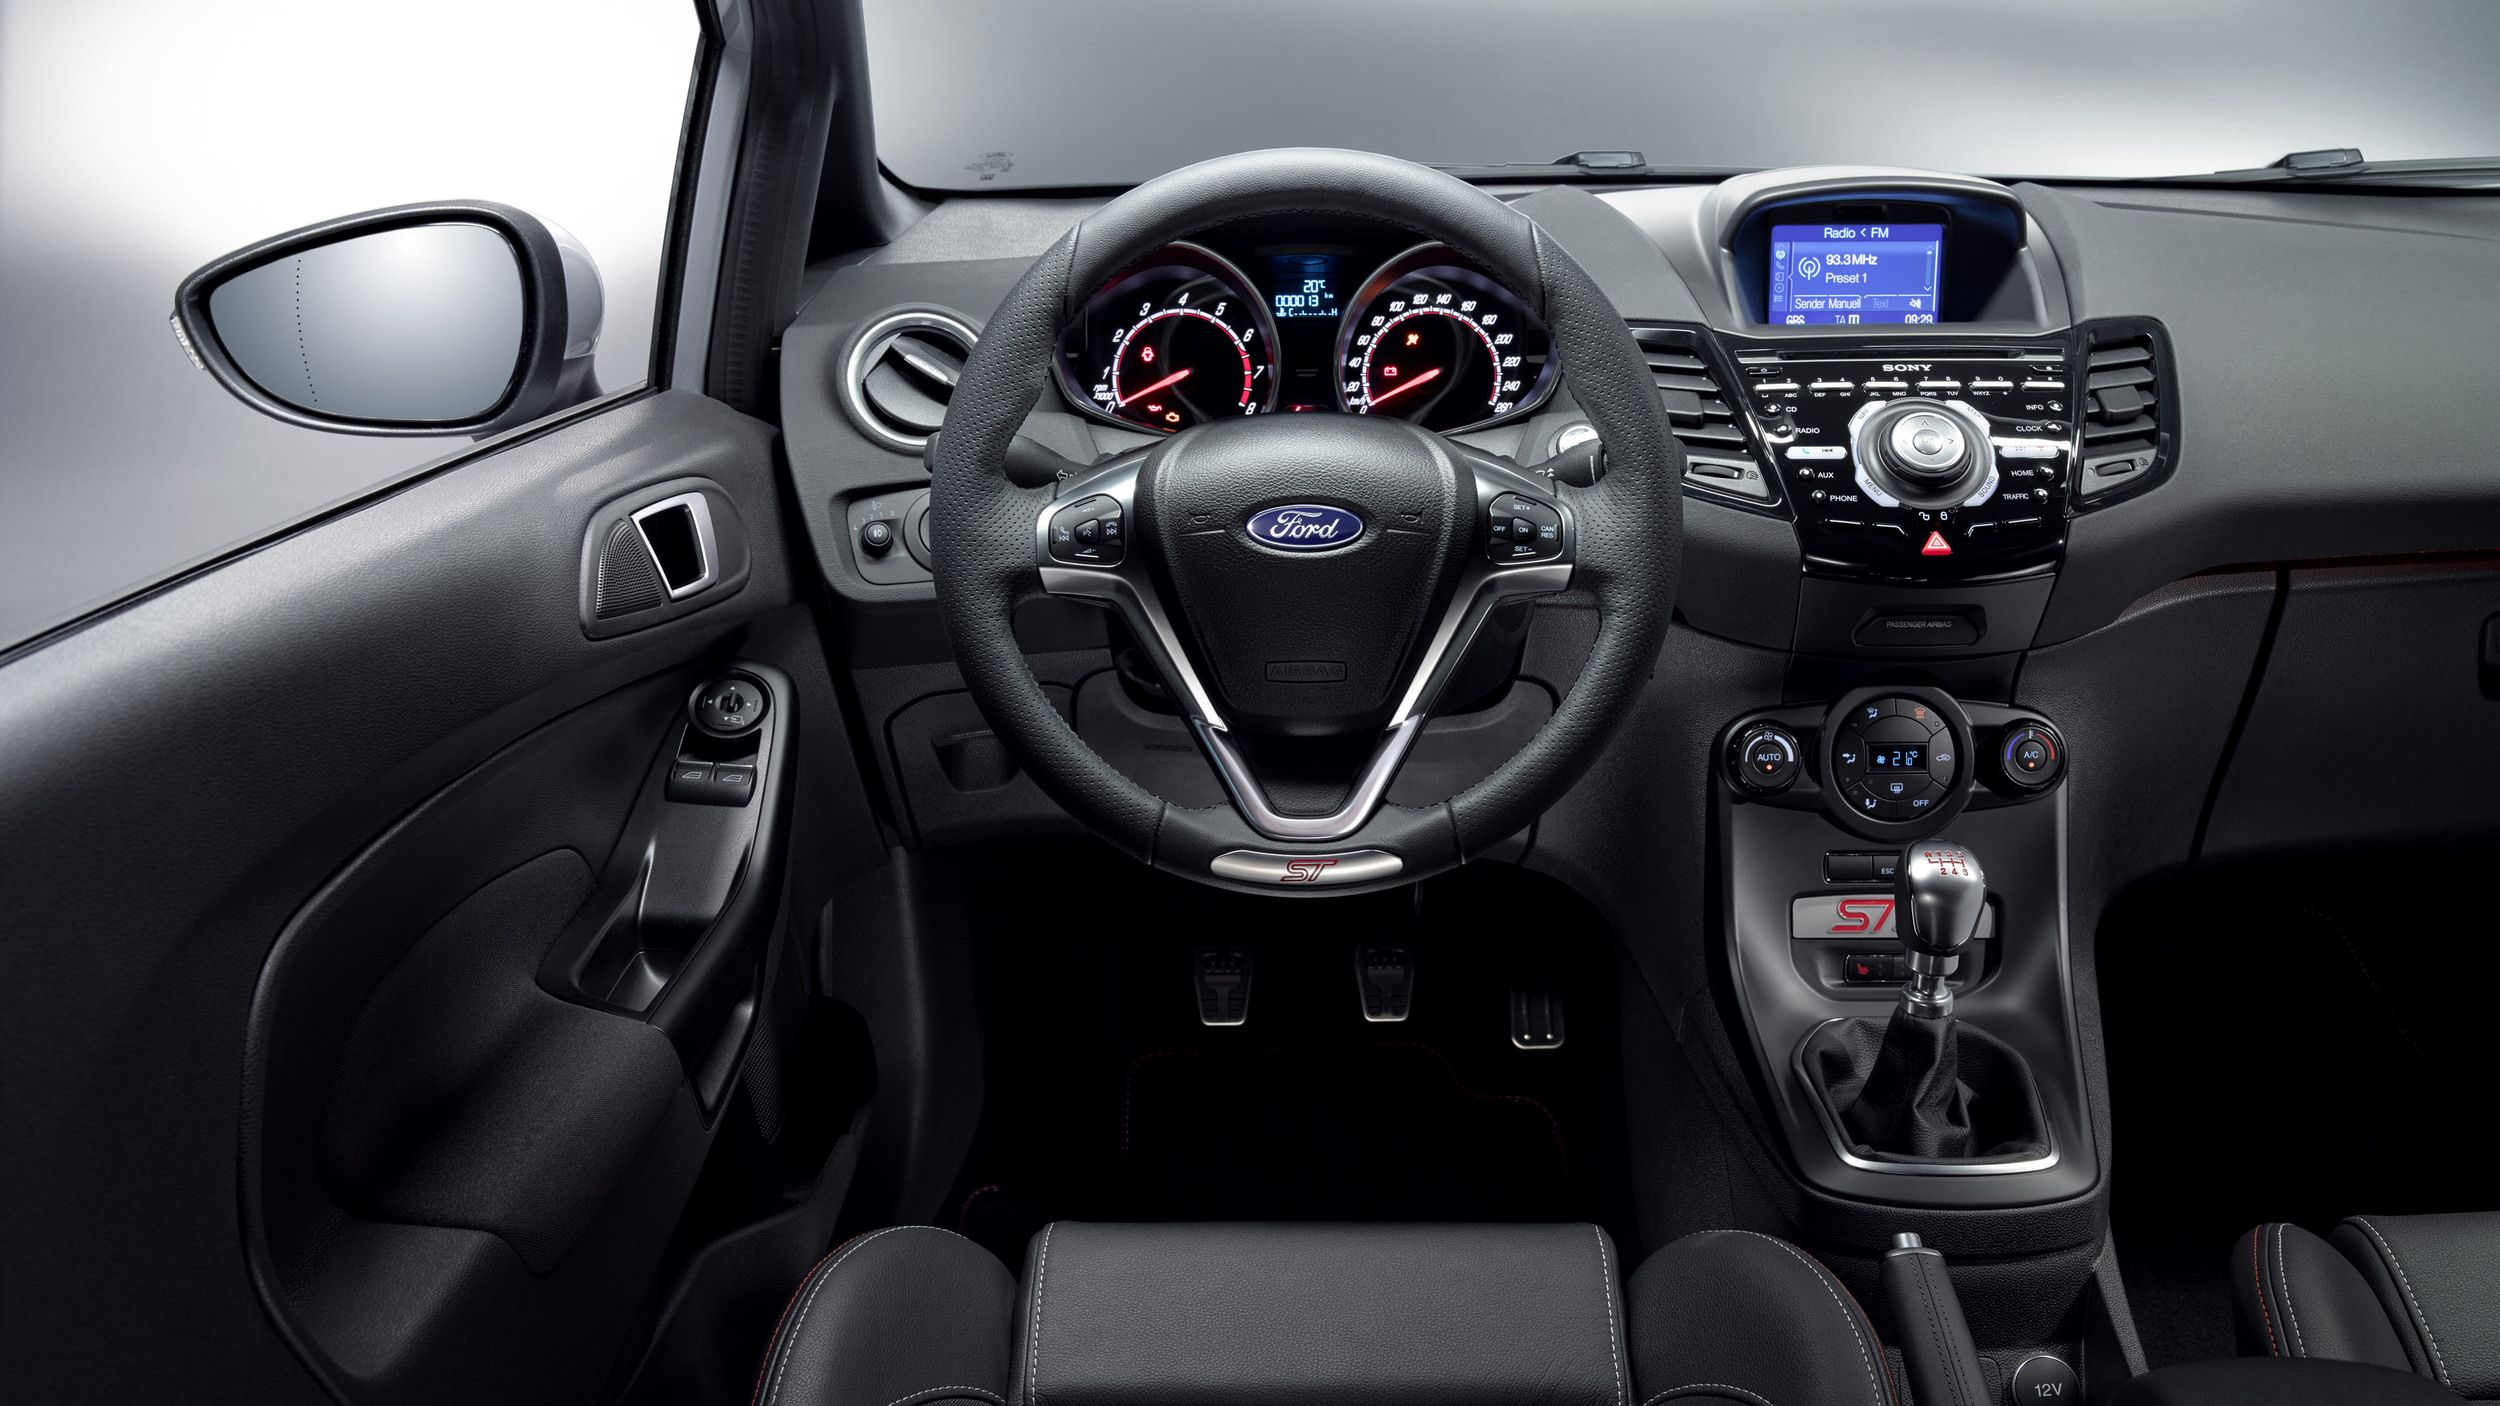 Ford fiesta st200 adds more spice to a great hot hatch